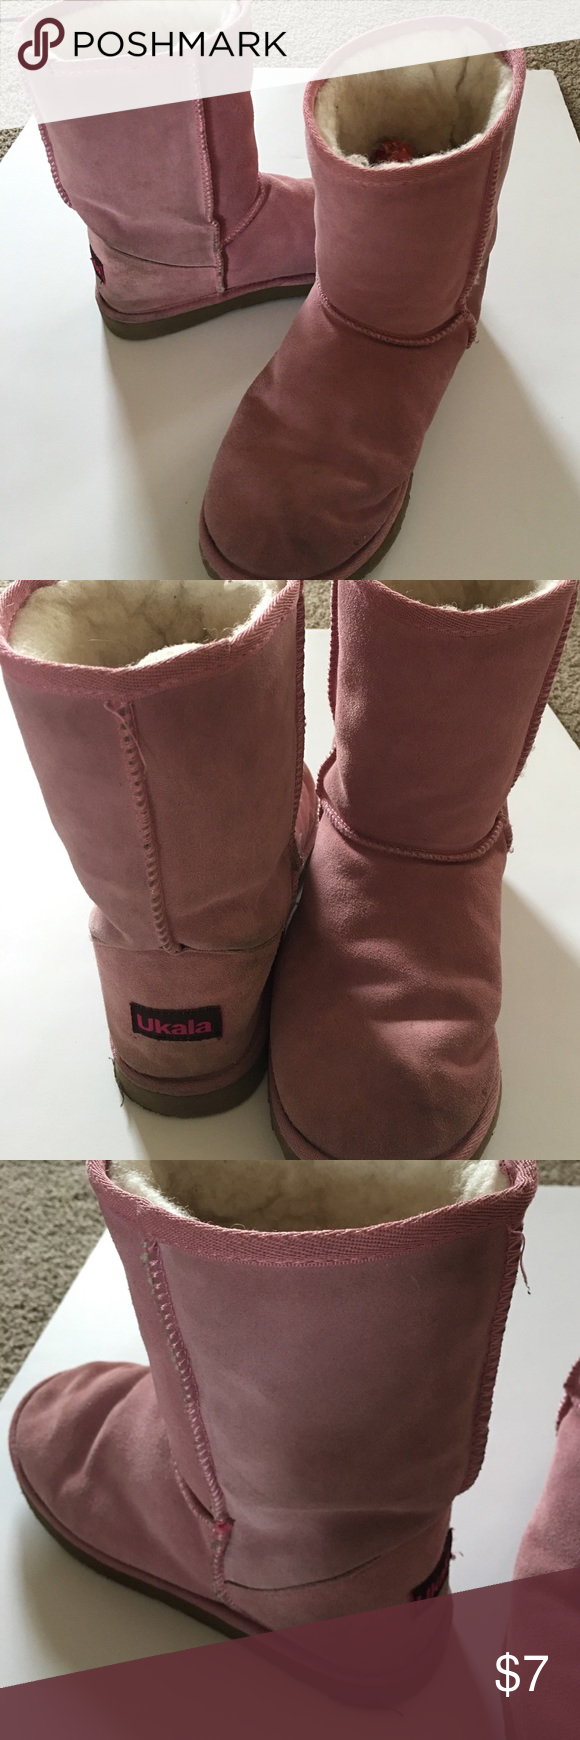 Ukala Pink Boots Pretty in Pink Boots!  They are a little dirty and pre-loved by me but have lots of life left in them! Ukala Shoes Winter & Rain Boots